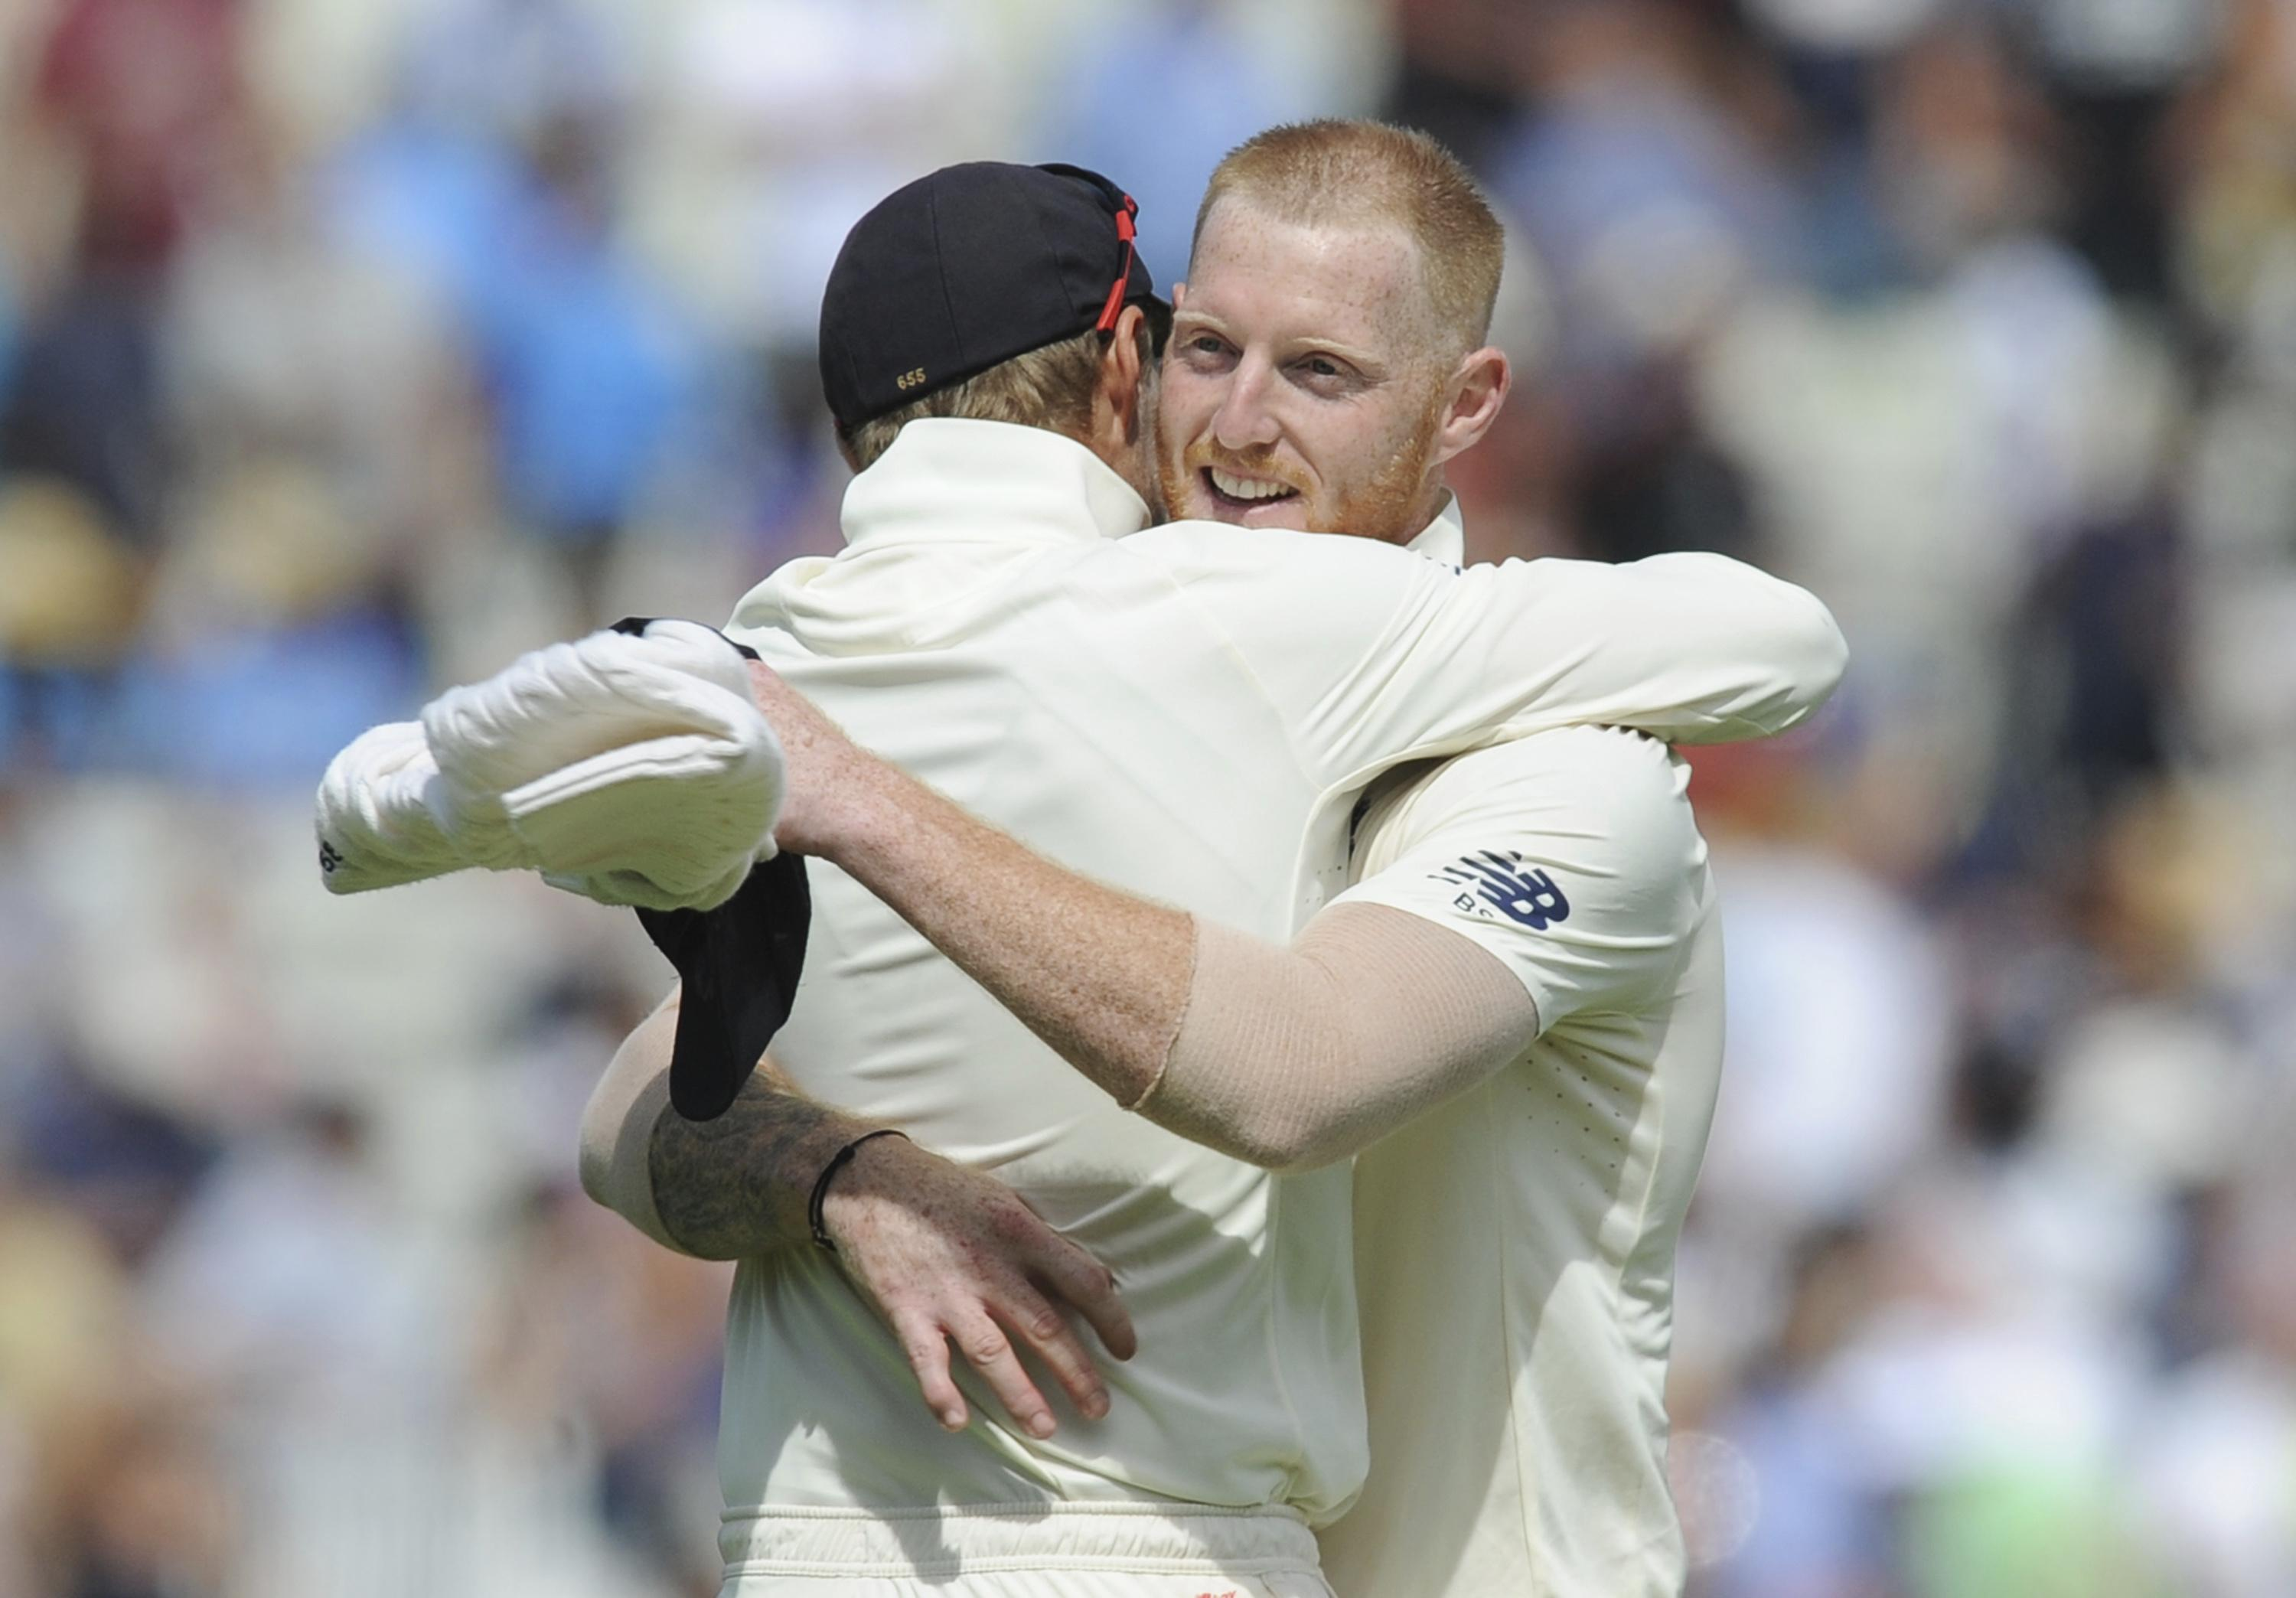 Stokes will miss the second Test with his trial expected to last between six and seven days